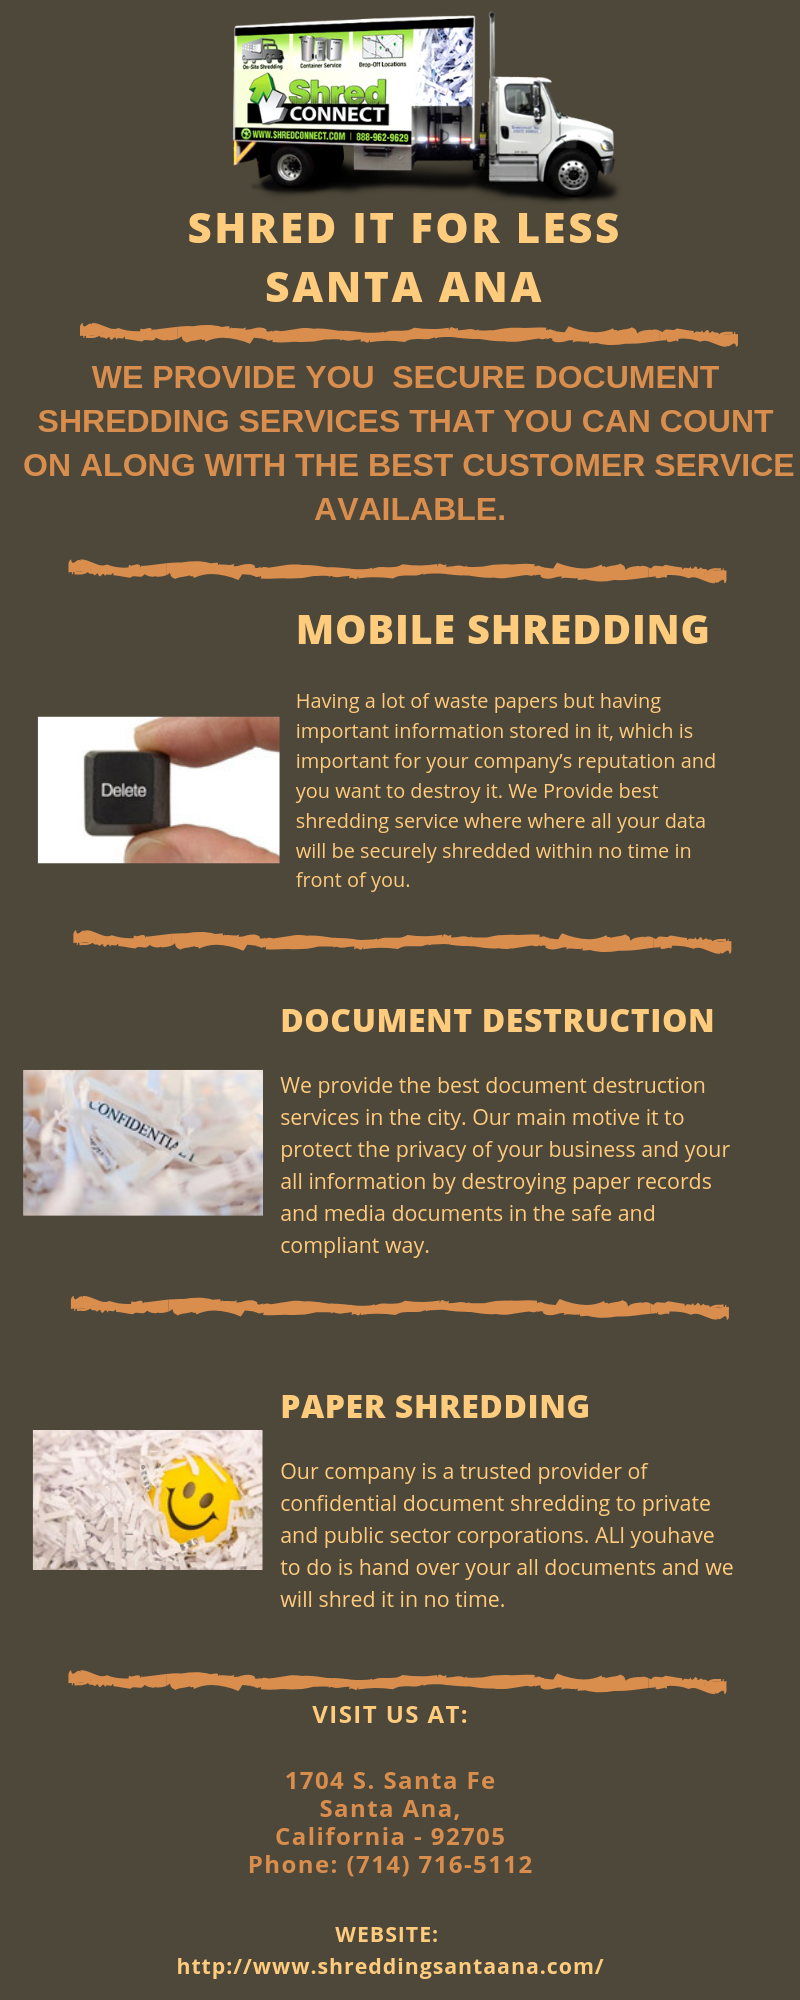 Shred It For Less Long Beach Provide Secure Document Shredding Service All Materials Are Recycled To Of Document Shredding Shredding Service Document Shredder